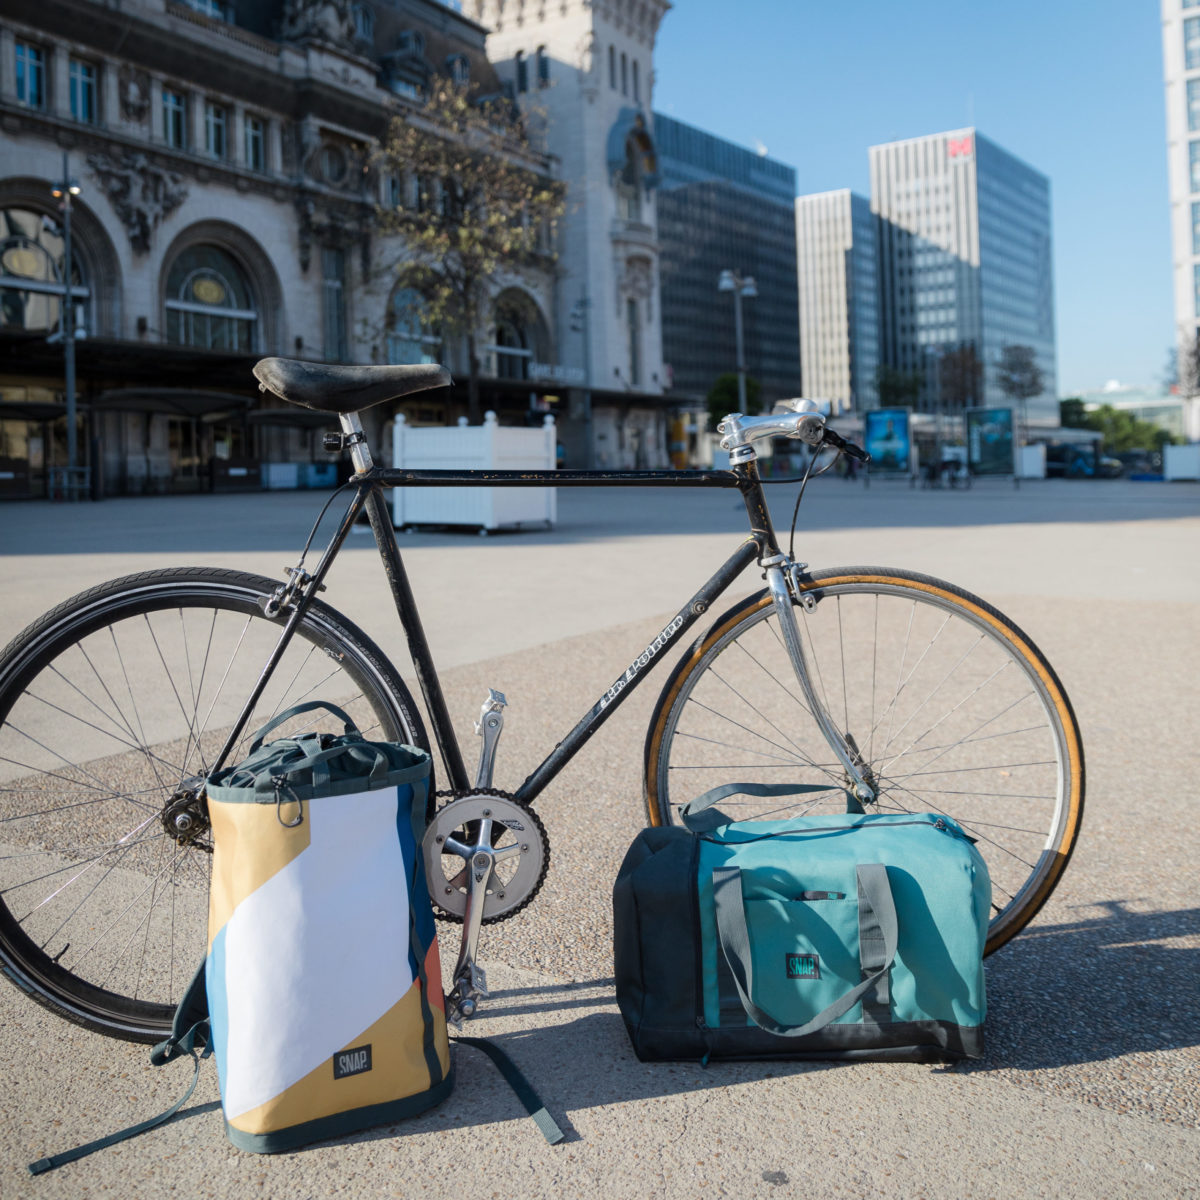 dietrich haulbag with a bike